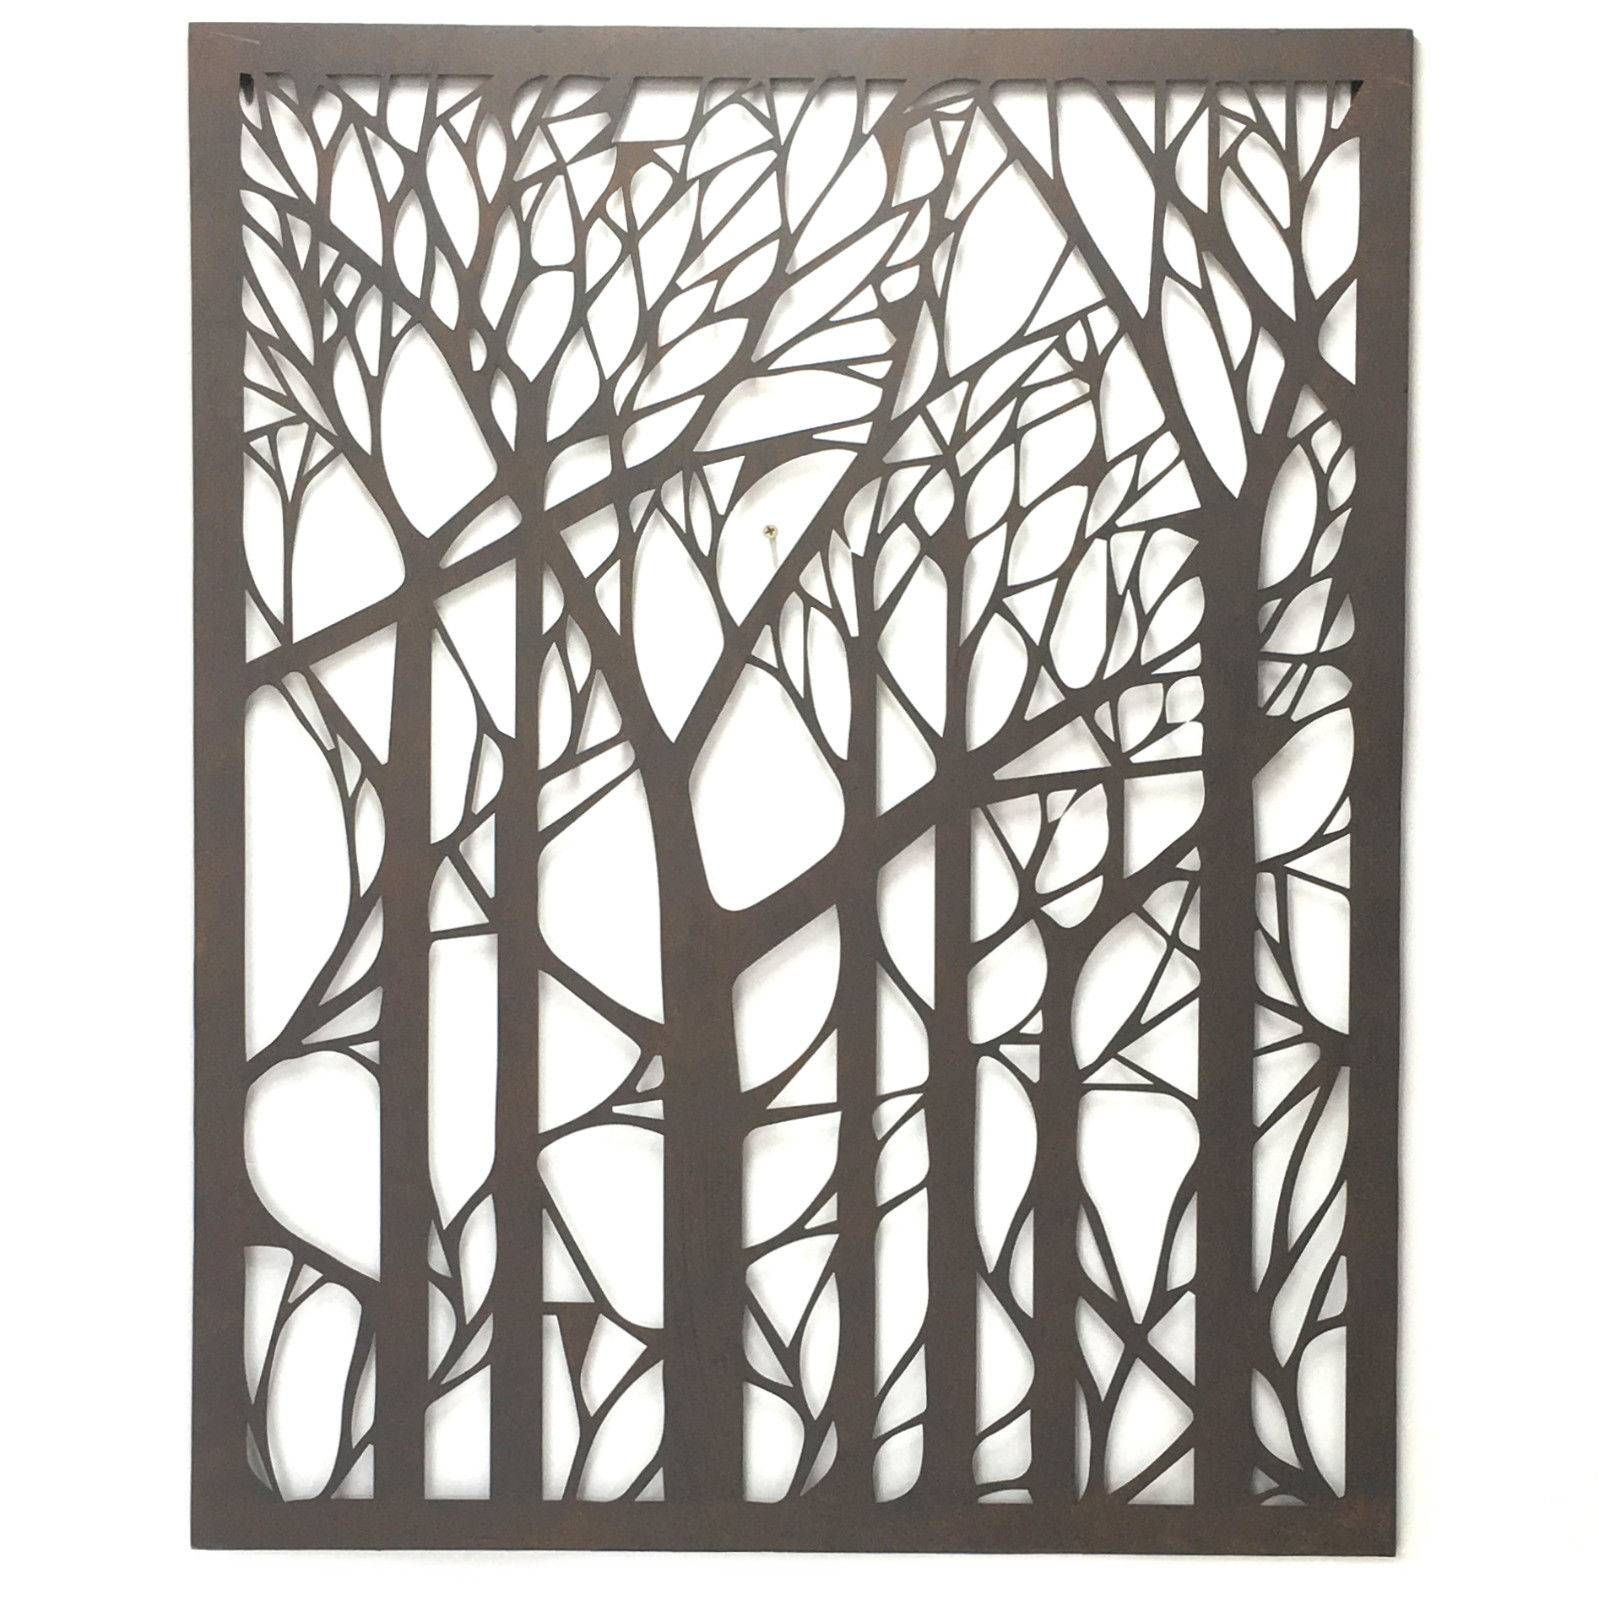 Wall Art Designs: Outdoor Wall Art Metal Tree Metal Wall Art With Regard To Current Outdoor Wall Sculpture Art (View 19 of 20)